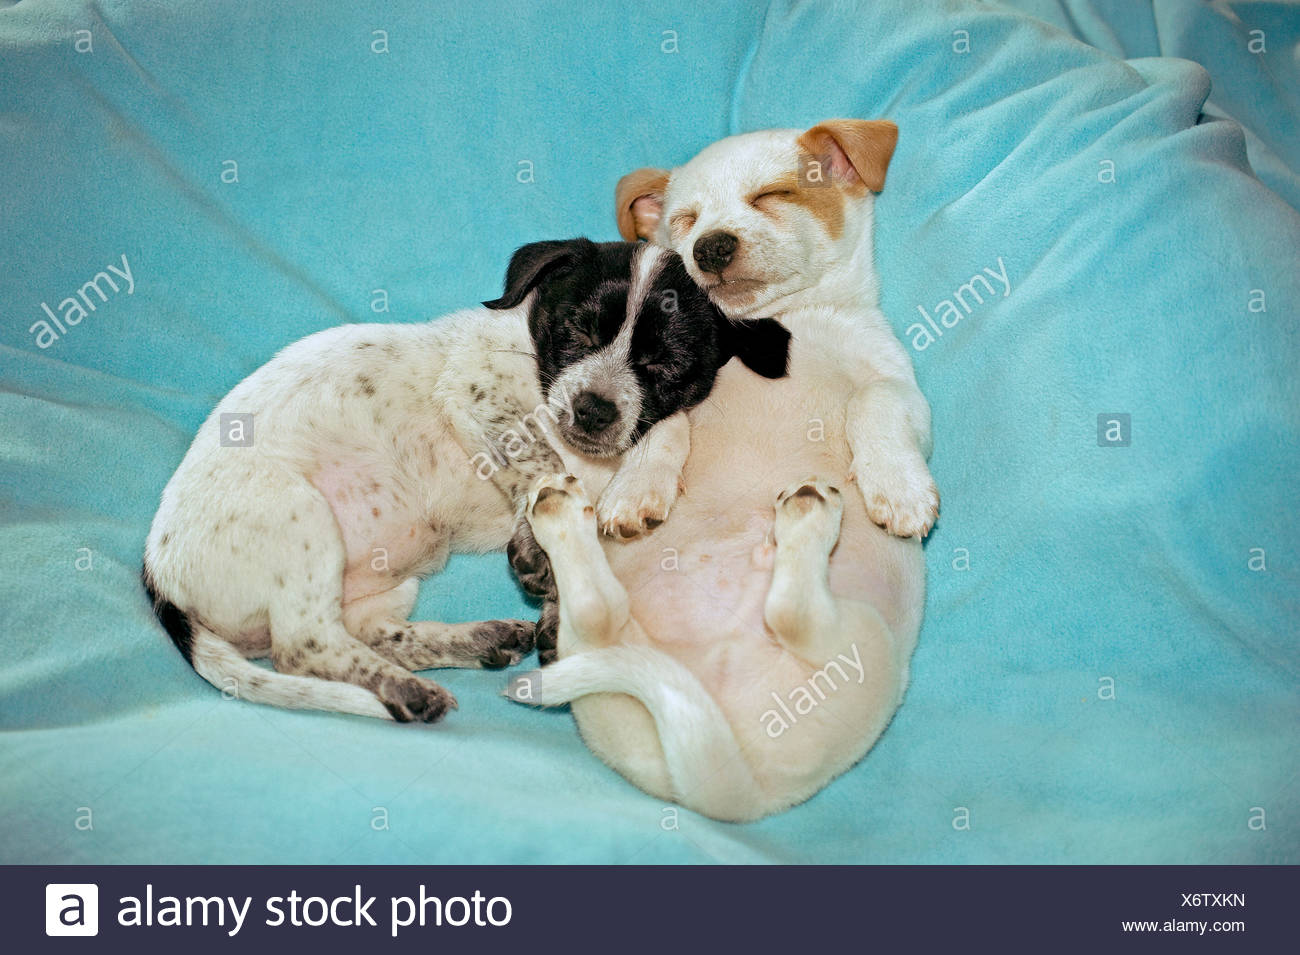 Two Puppies Sleeping Stock Photos & Two Puppies Sleeping Stock ...